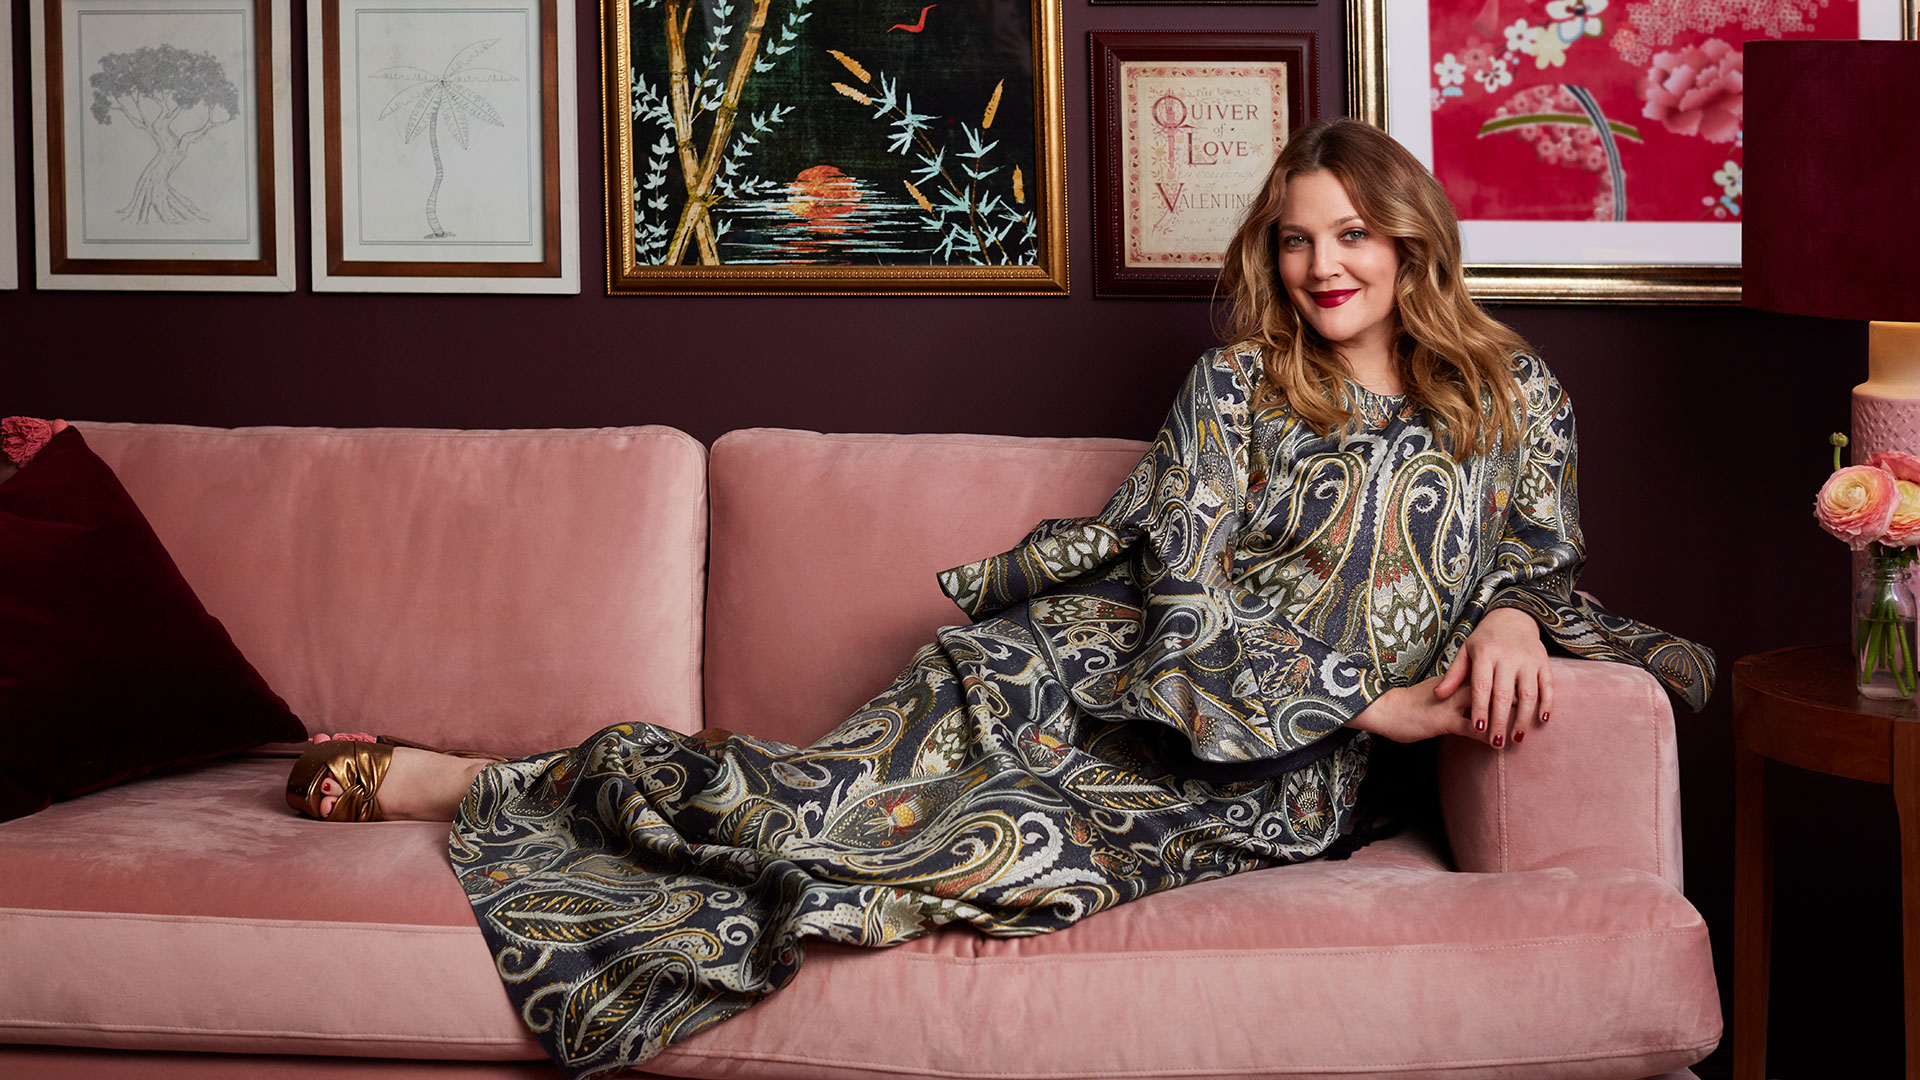 Grab Your Credit Card Drew Barrymore Just Dropped A New Home Decor Line